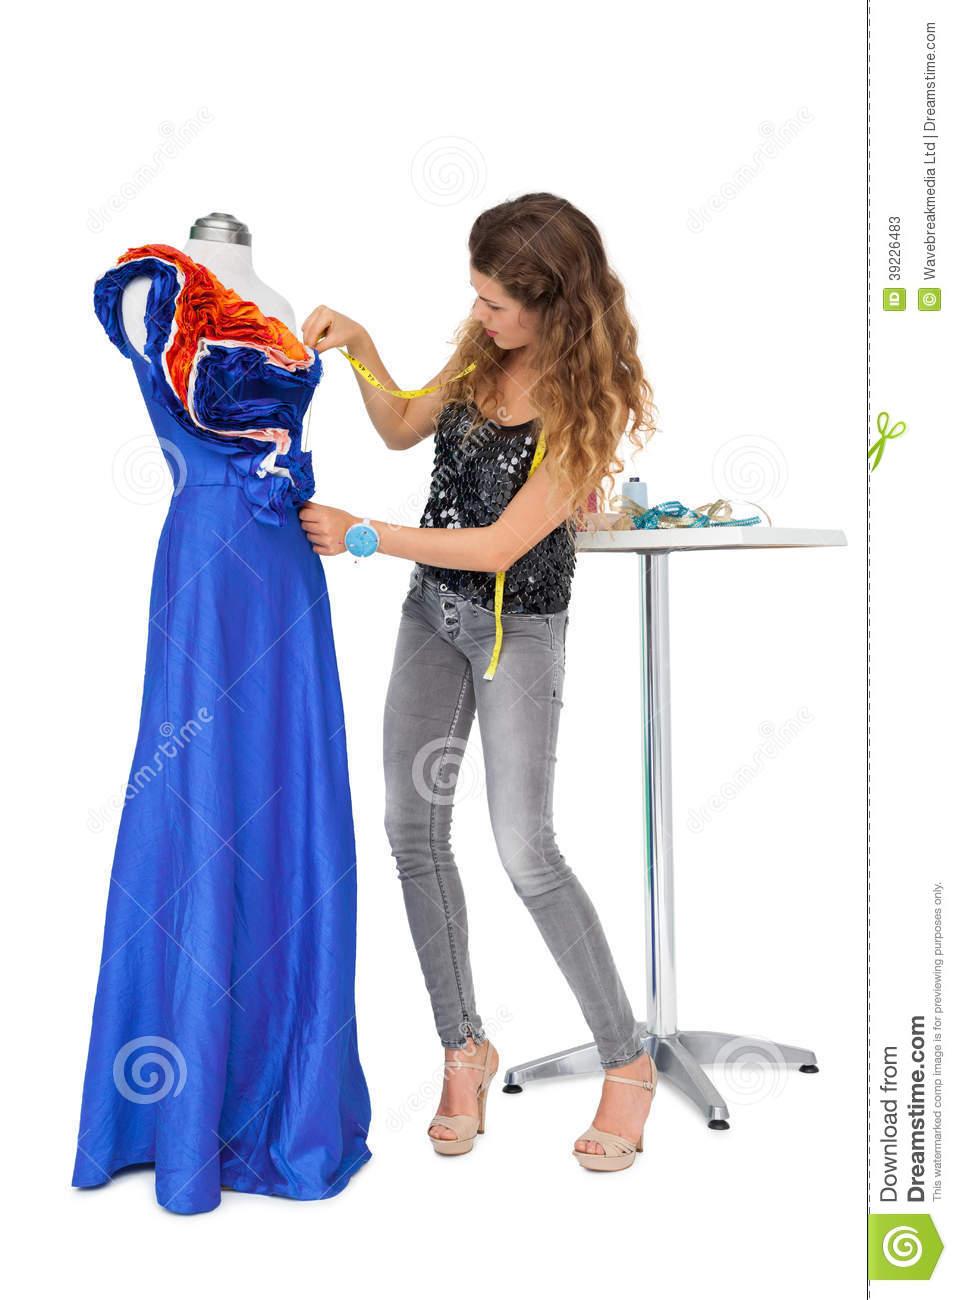 Full Length Female Mannequin Royalty Free Stock Photo